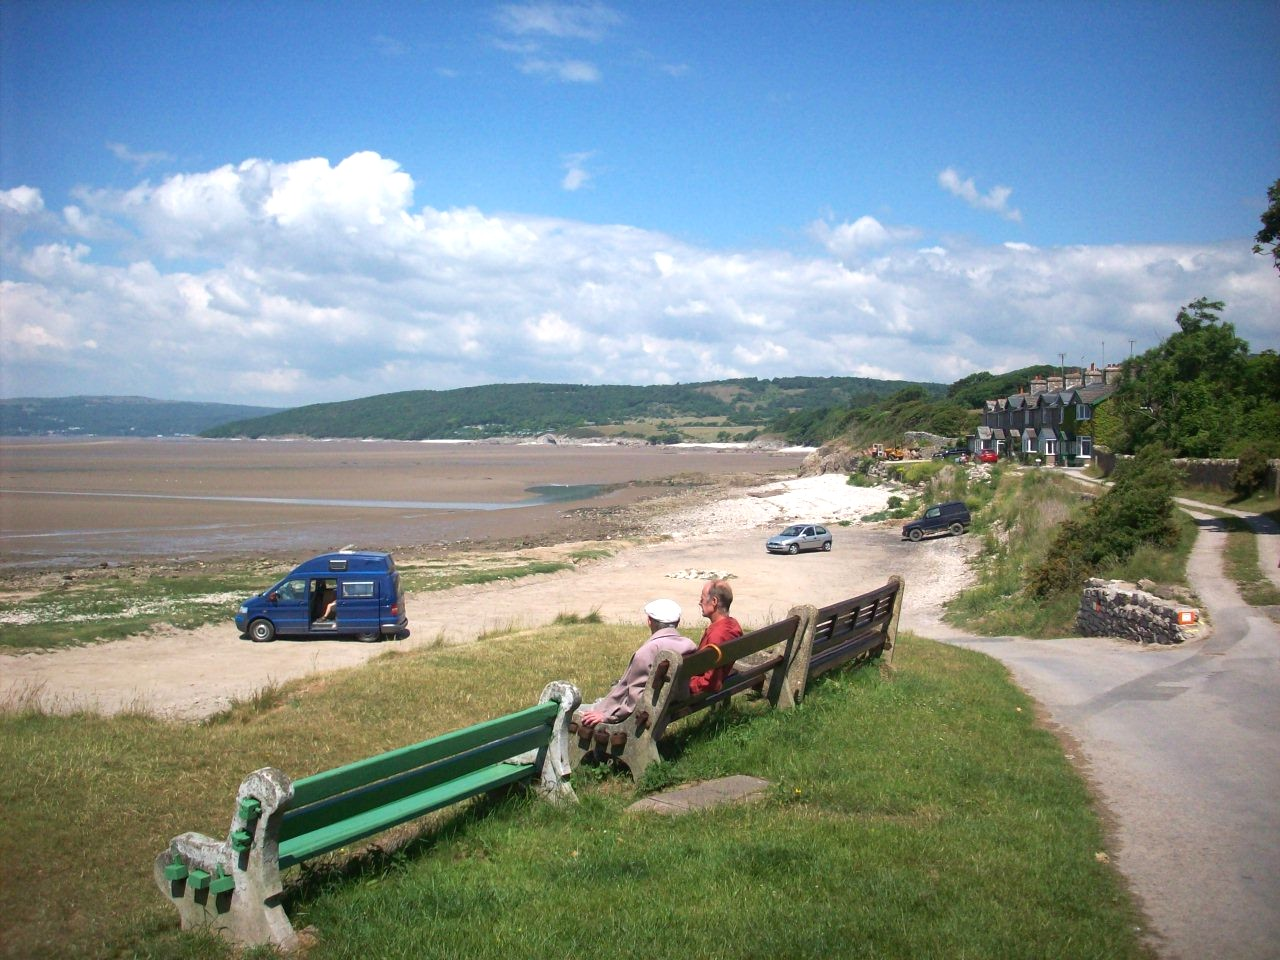 Pictures From My Cycle Tour Of Lancashire Featuring Morecambe Bay And The Forest Of Bowland